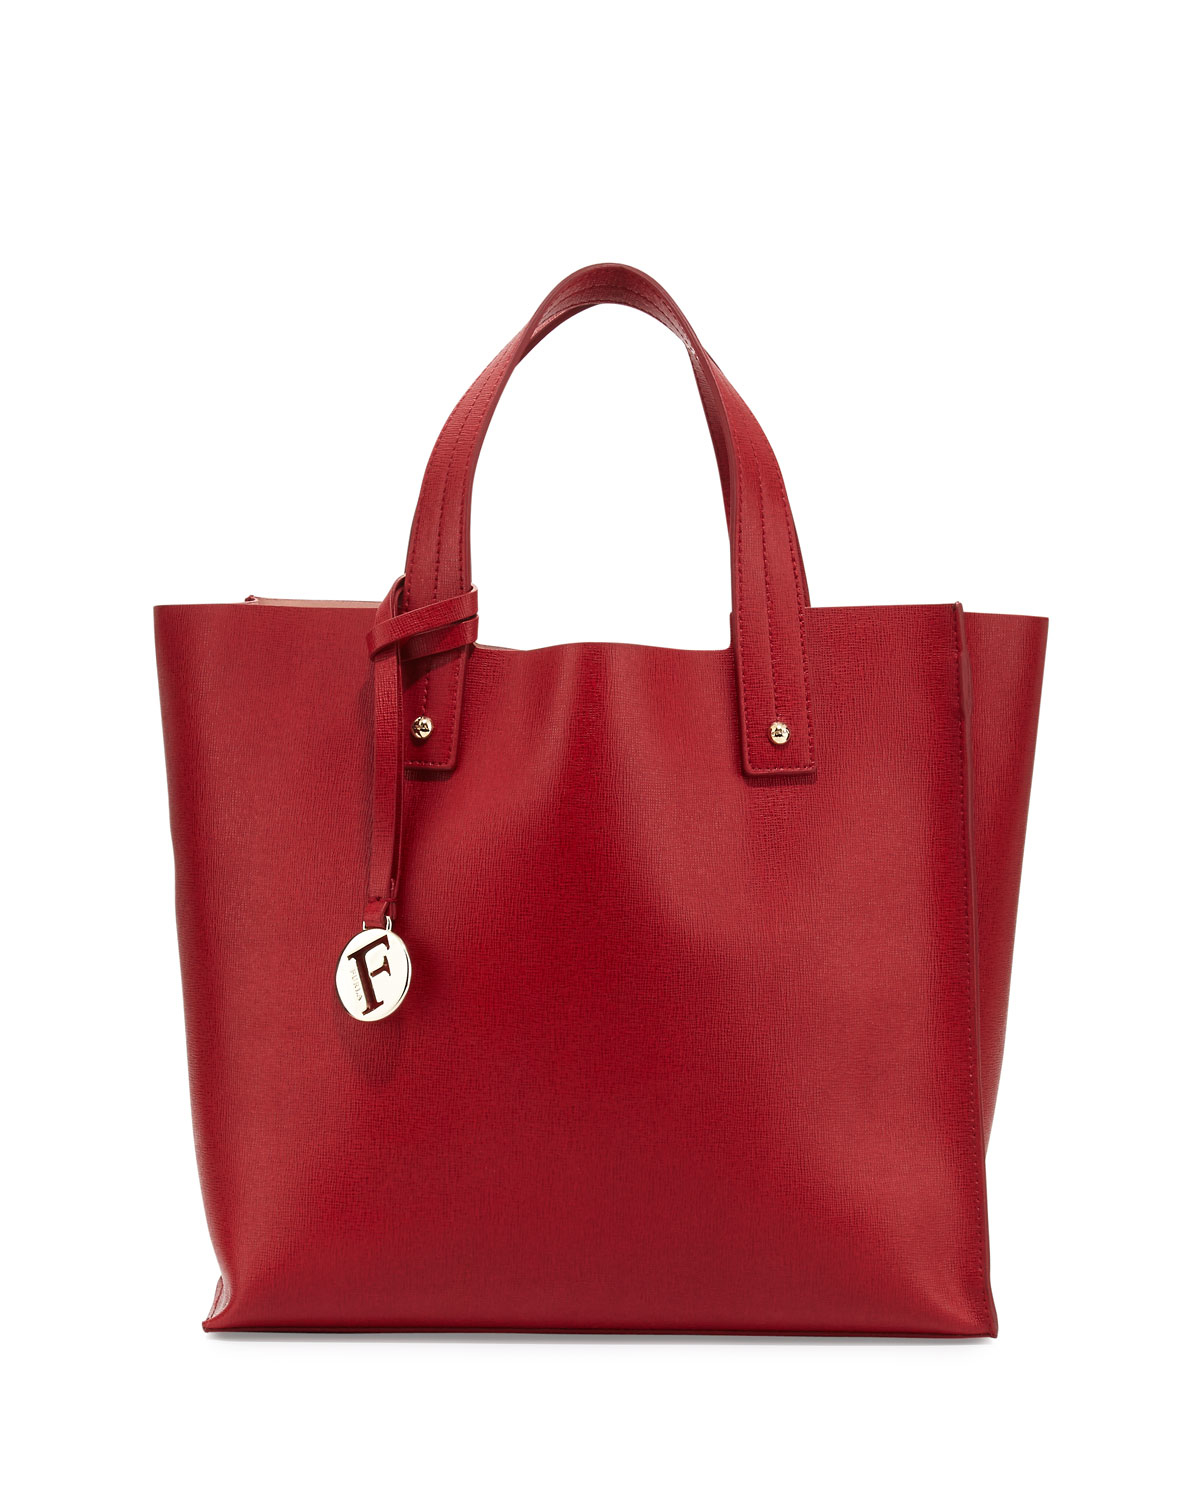 Furla Red Leather Handbag   Luggage And Suitcases